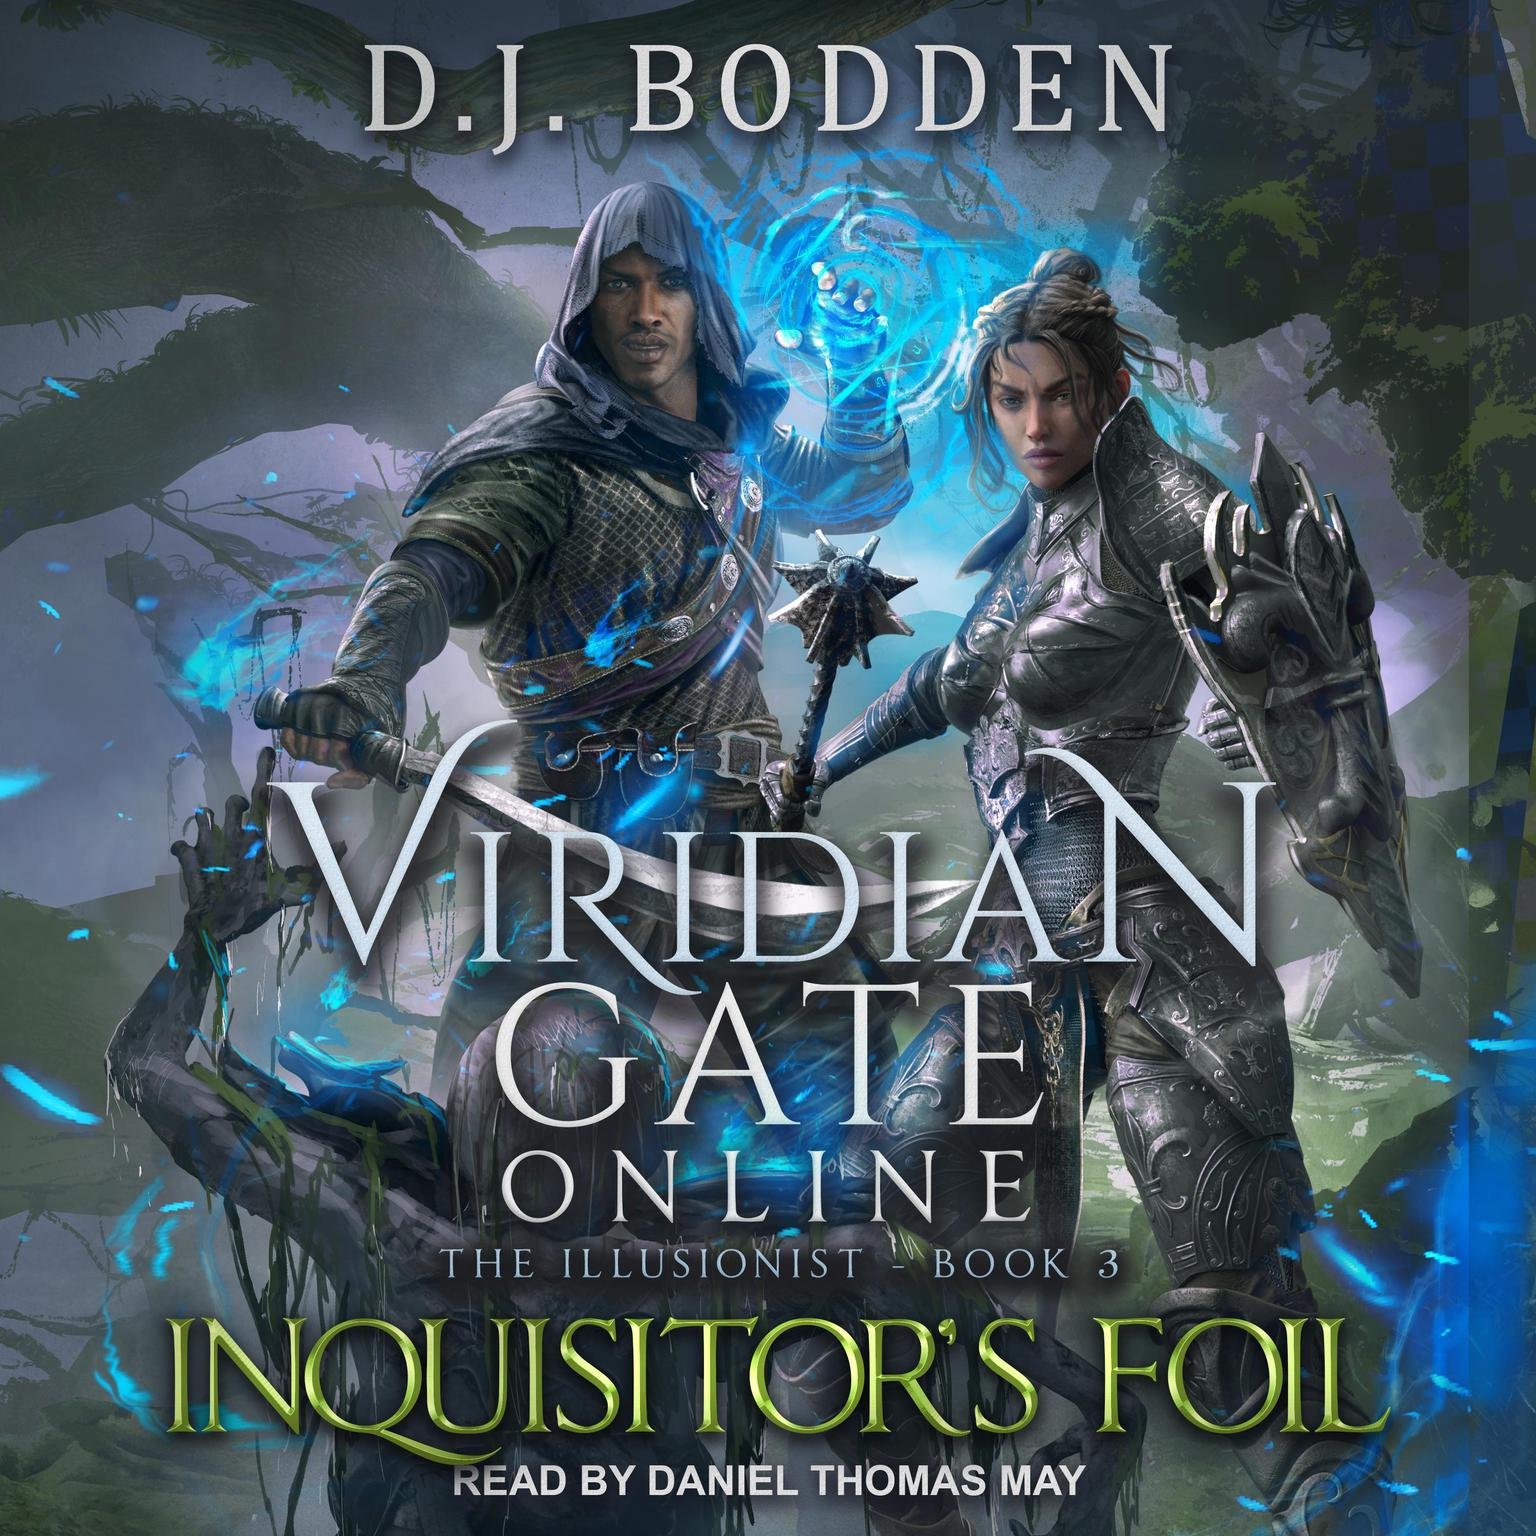 Printable Viridian Gate Online: Inquisitor's Foil Audiobook Cover Art